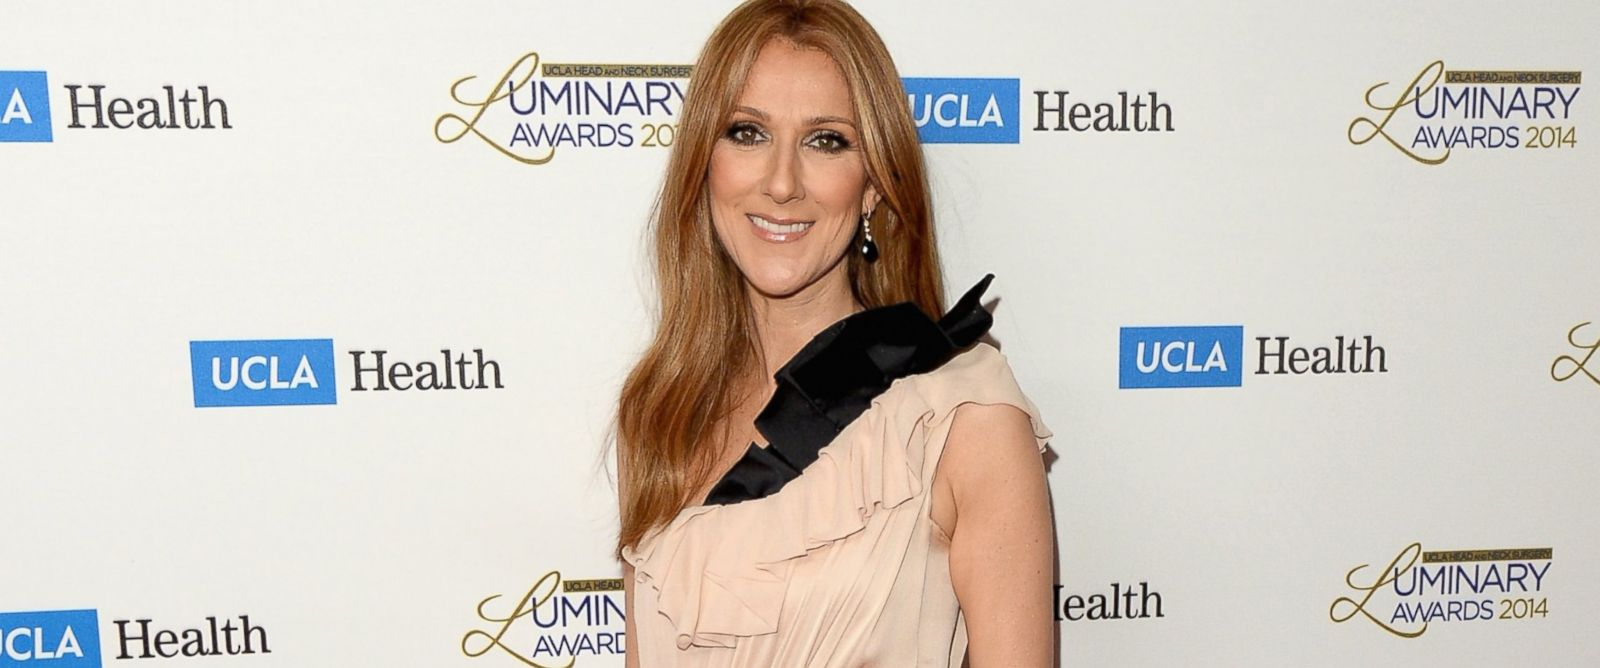 PHOTO: Musician Celine Dion attends the UCLA Head and Neck Surgery Luminary Awards at the Beverly Wilshire Four Seasons Hotel on Jan. 22, 2014 in Beverly Hills, Calif.